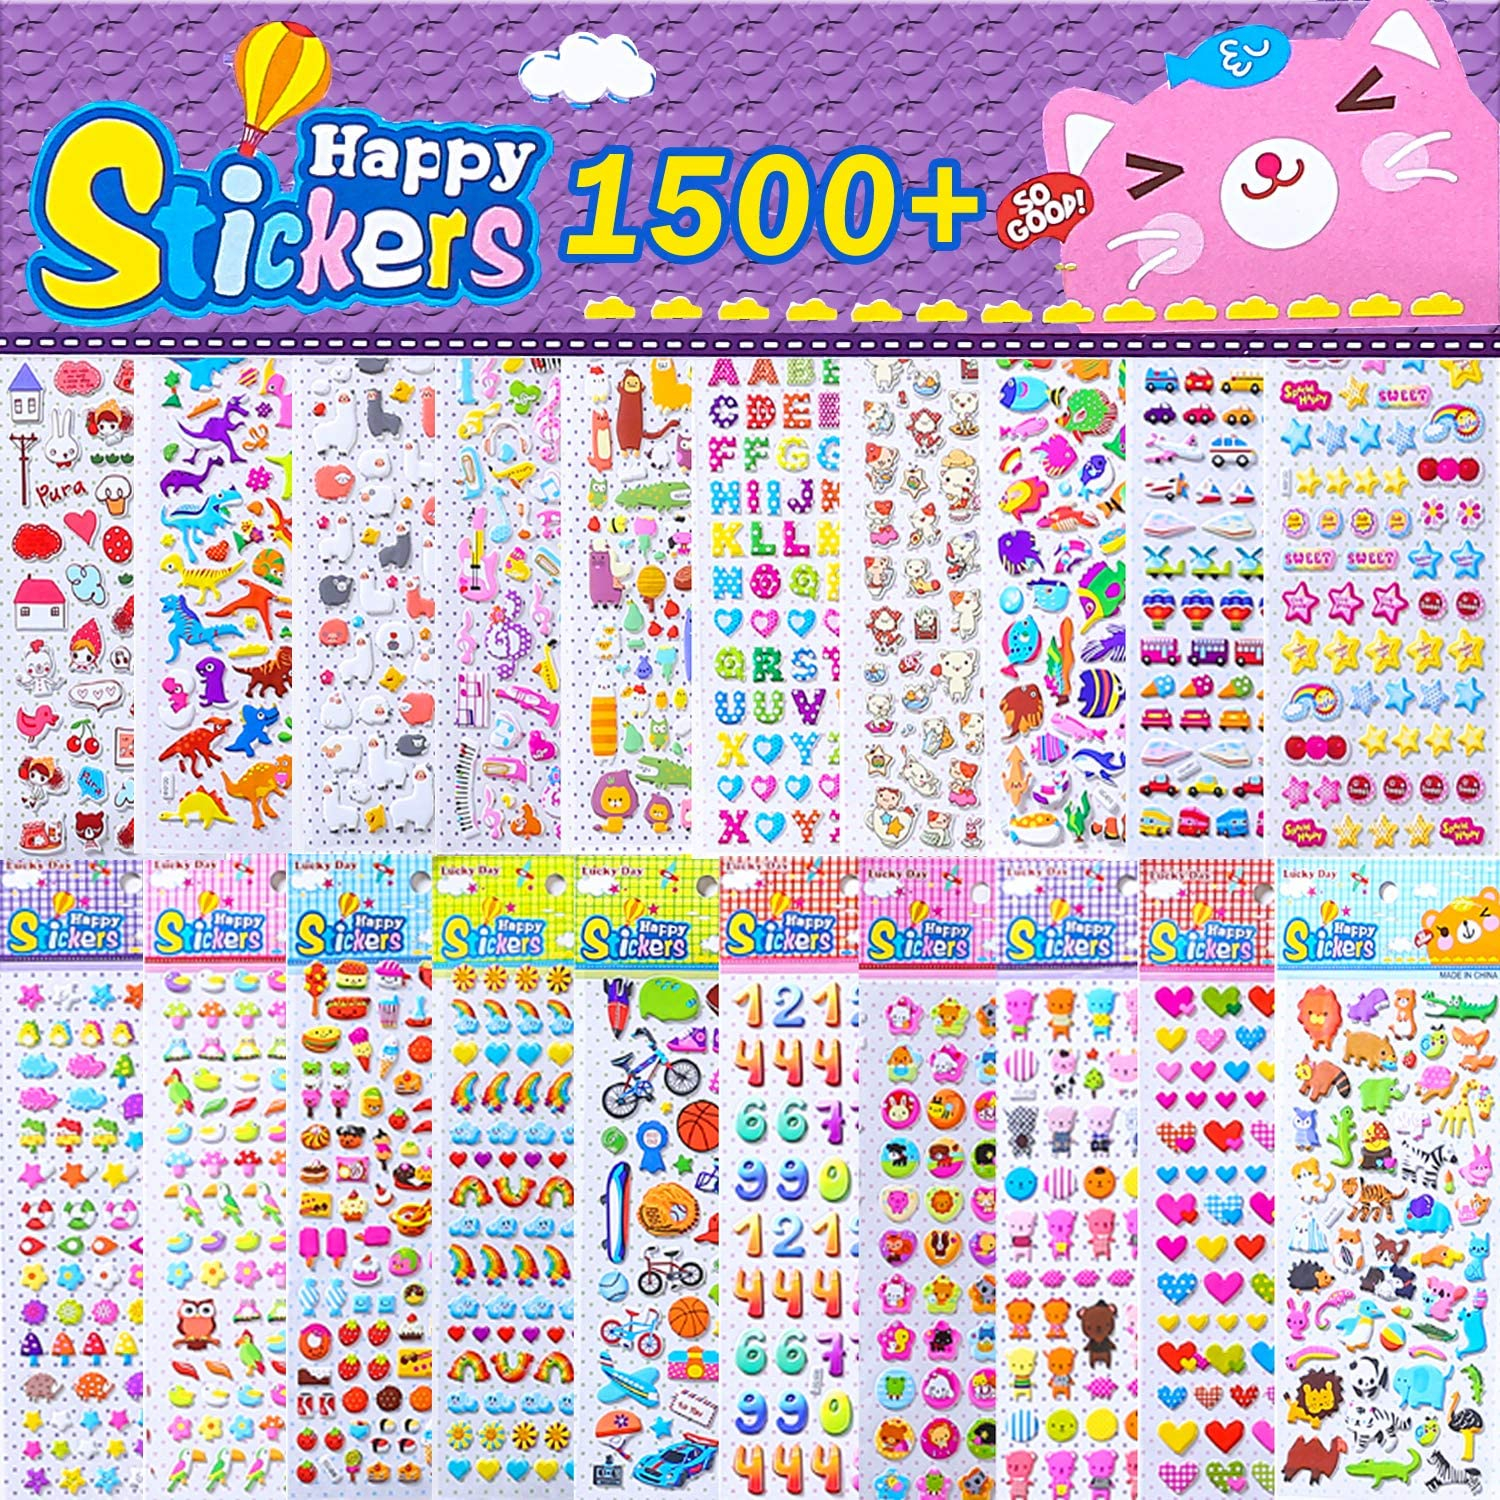 3D Puffy Sticker for Kids Ocean Animal Stickers for Boys Girls Teachers Birthday Gift Party Supplies Reward Bulk Scrapbooking Kids Stickers 500+ 10 Different Sheets